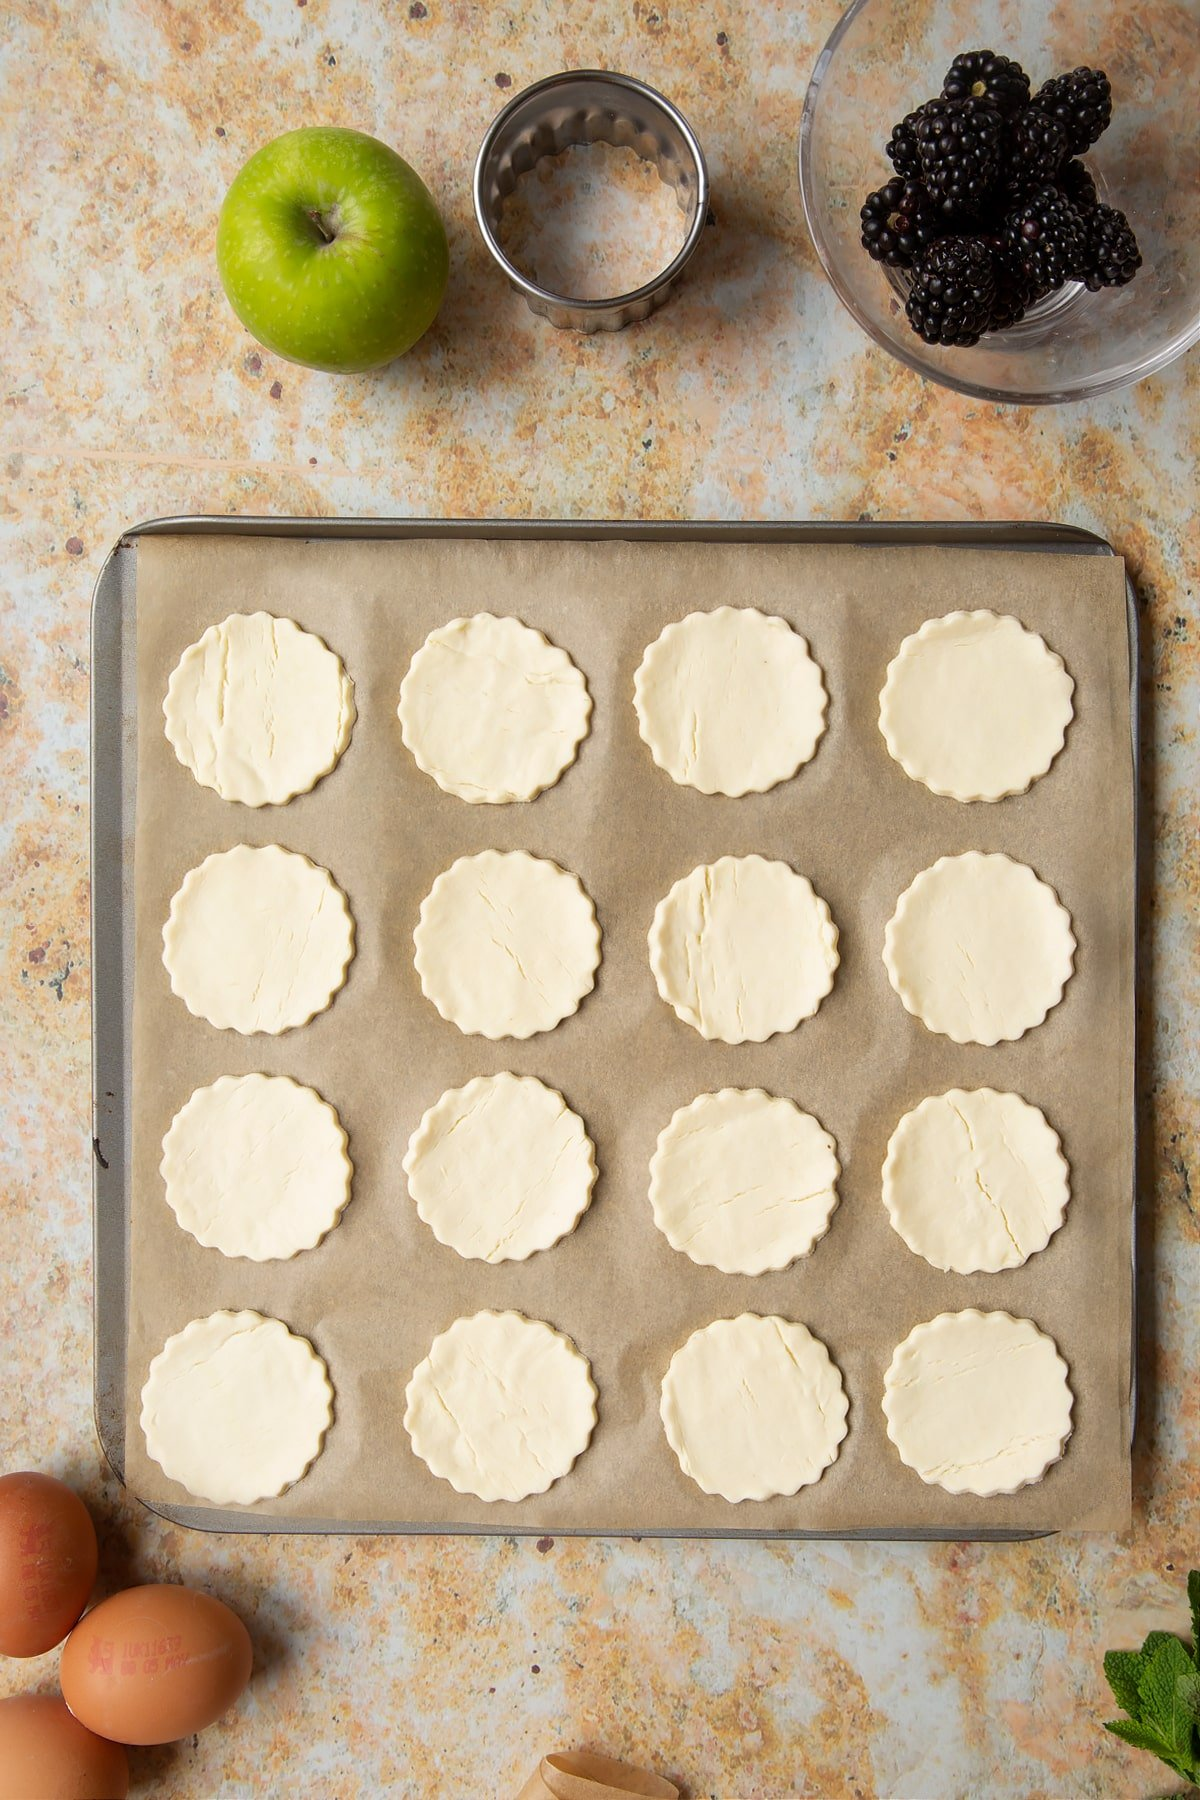 16 raw puff pastry discs sit on a lined baking sheet, ready to be baked.